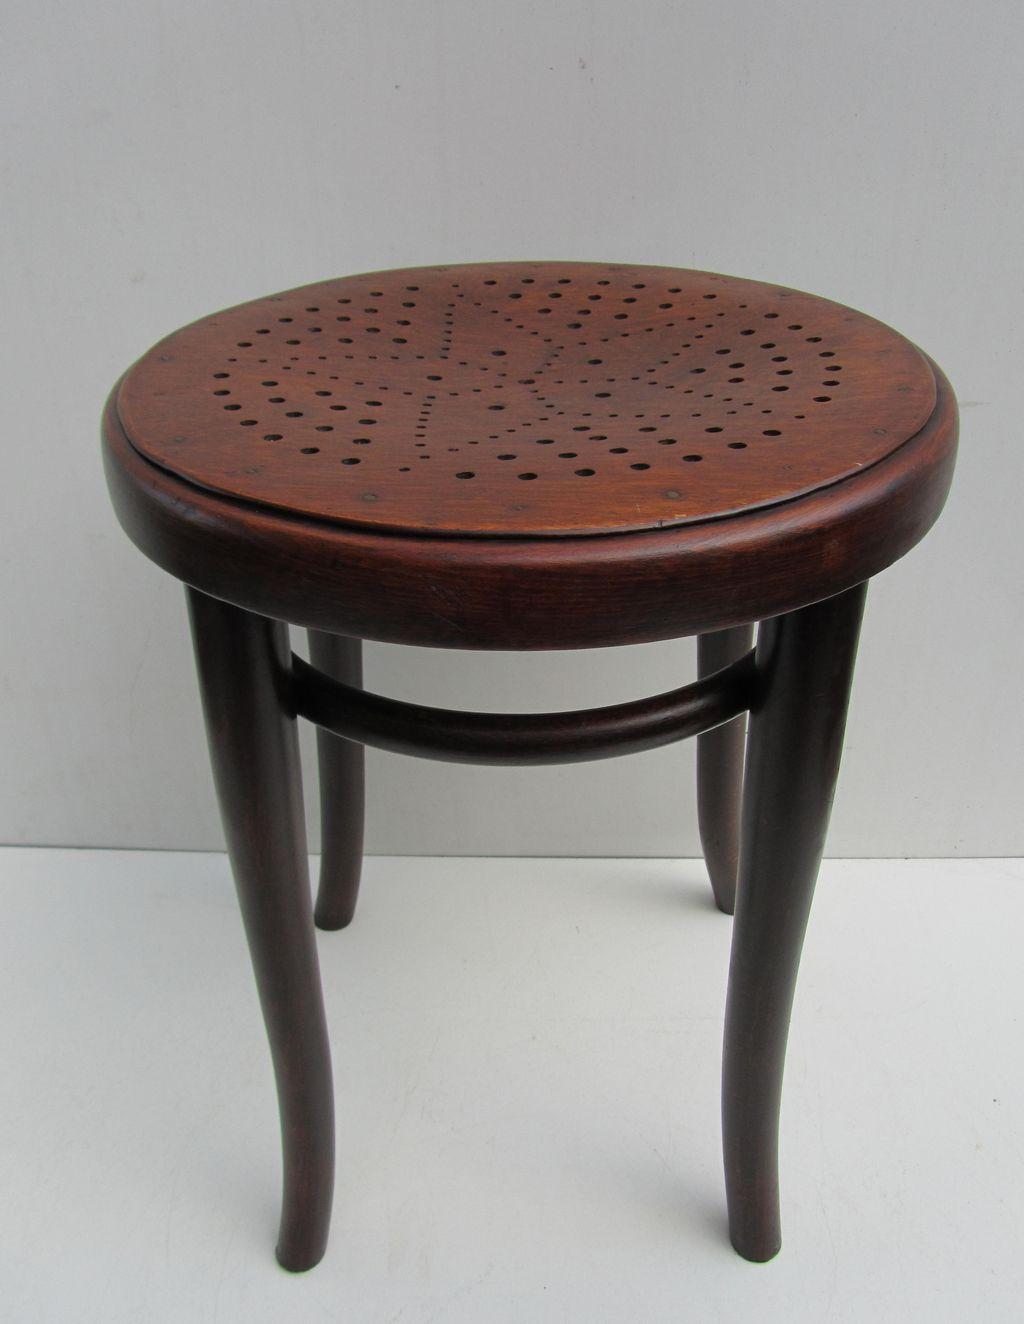 Hocker Vintage Original Thonet Hocker Stool